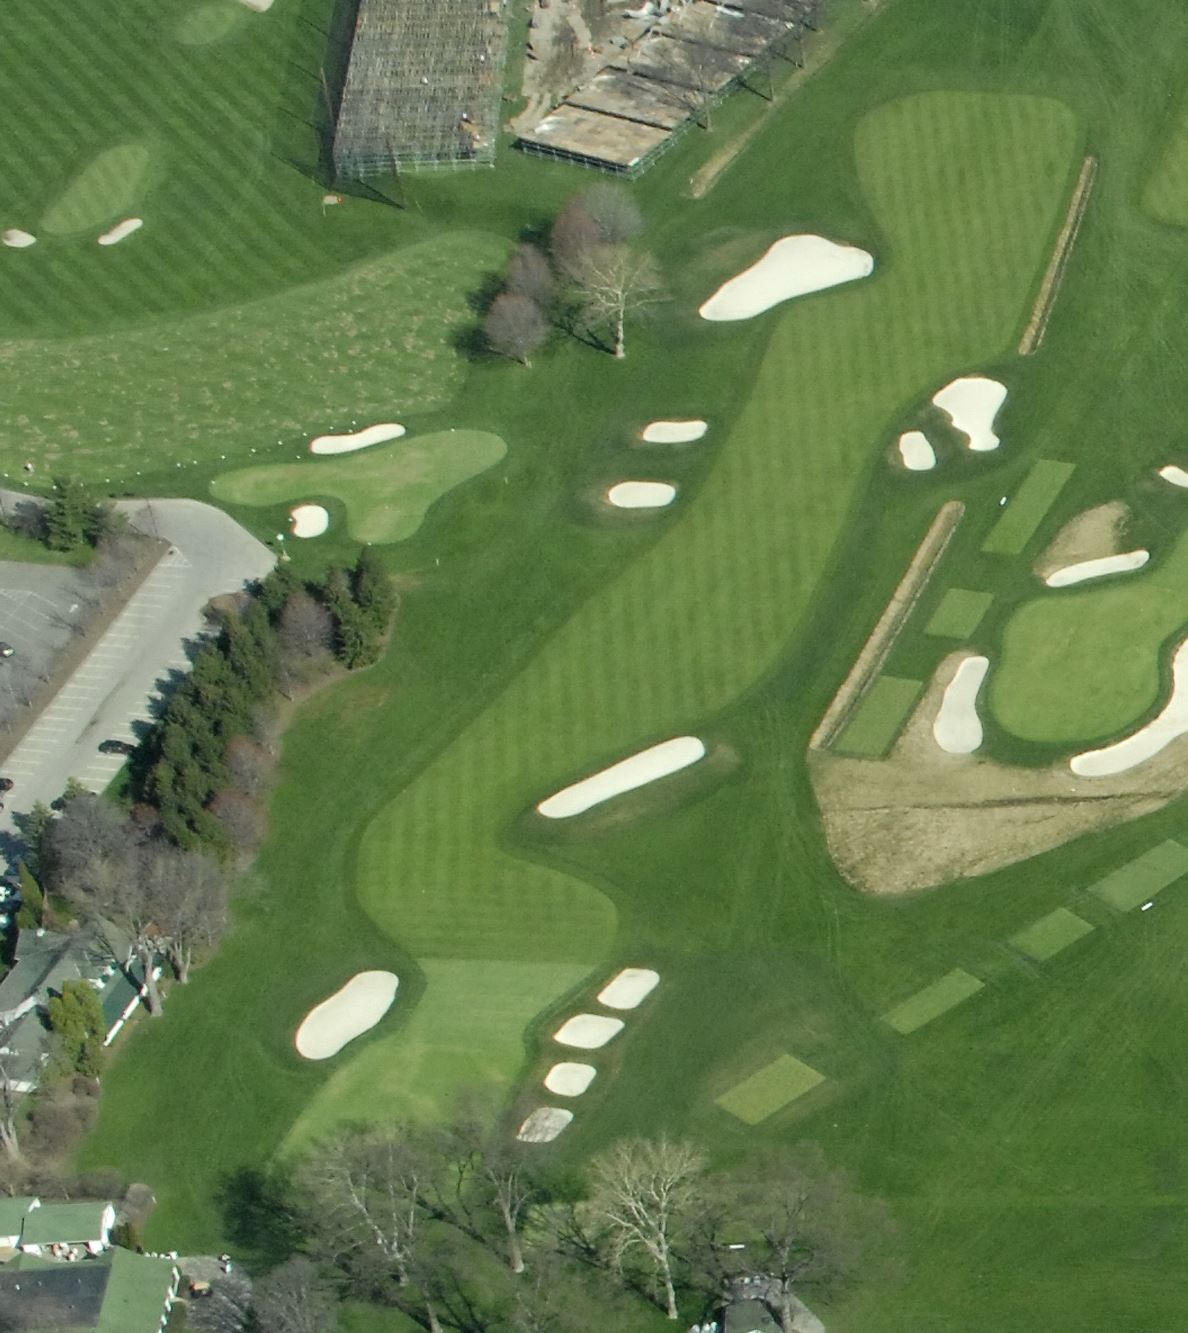 Oakmont country club puts focus on 2016 u s open for The oakmont